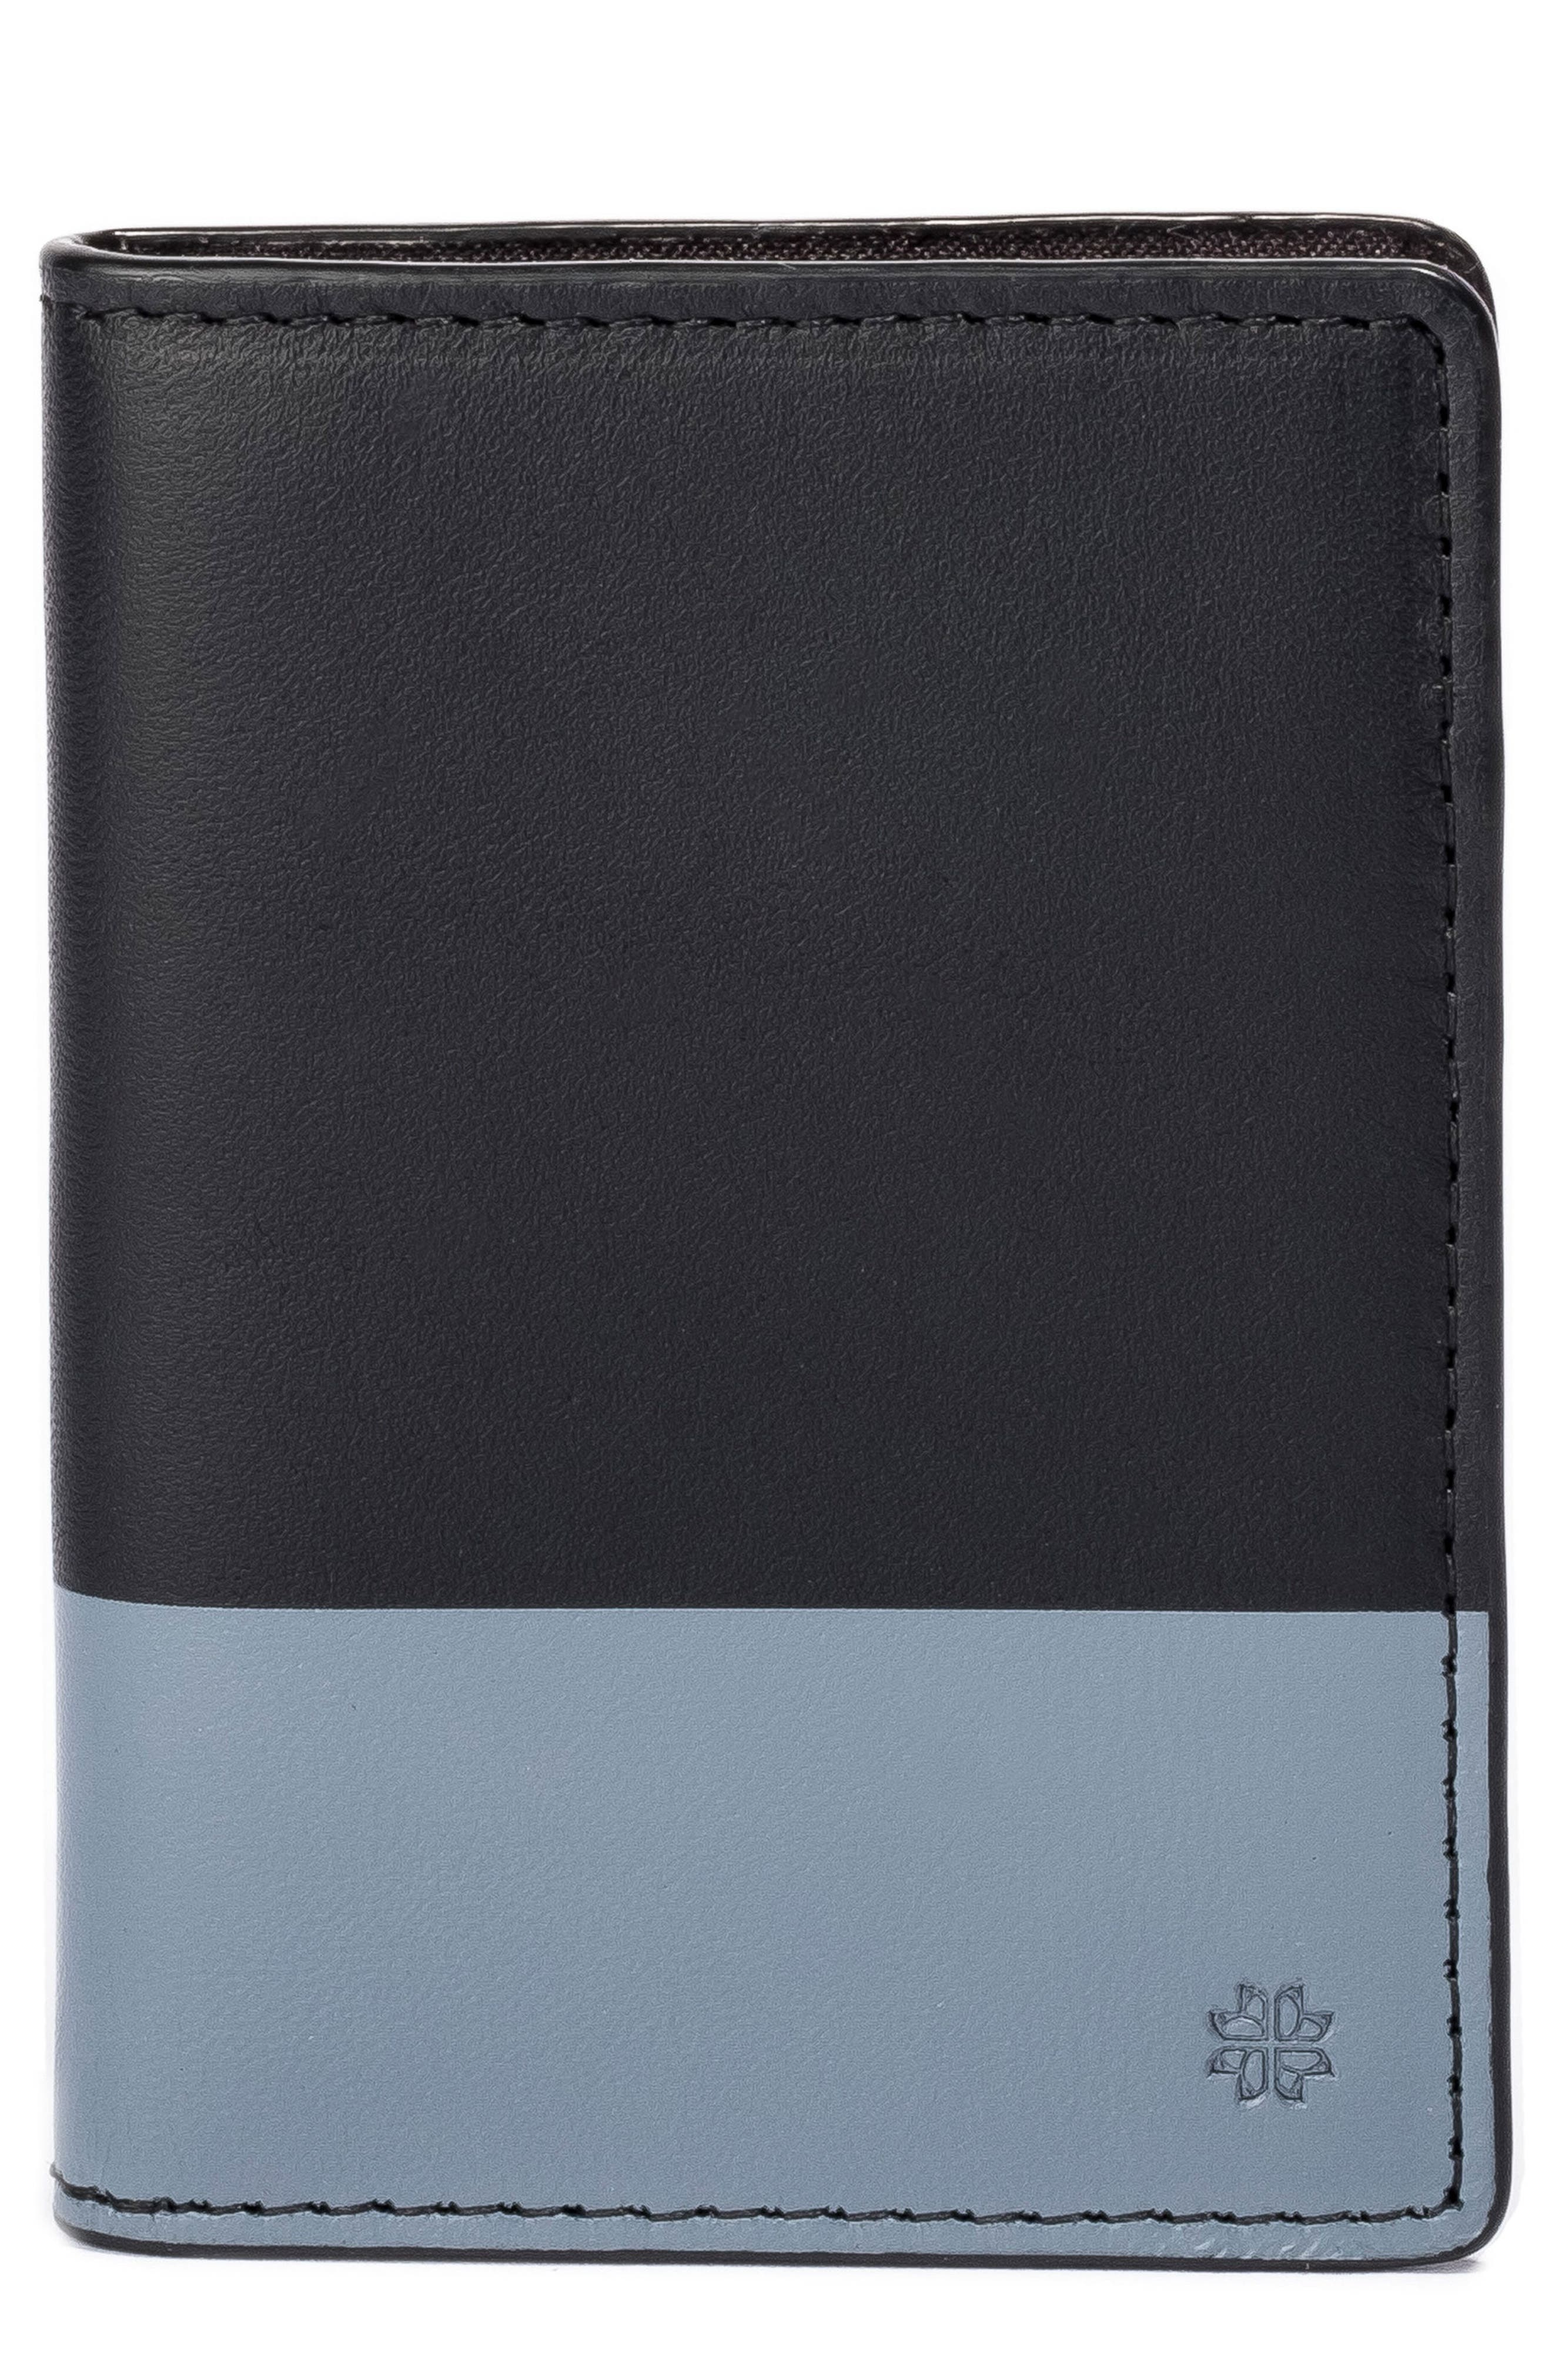 Leather Wallet,                         Main,                         color, Grey